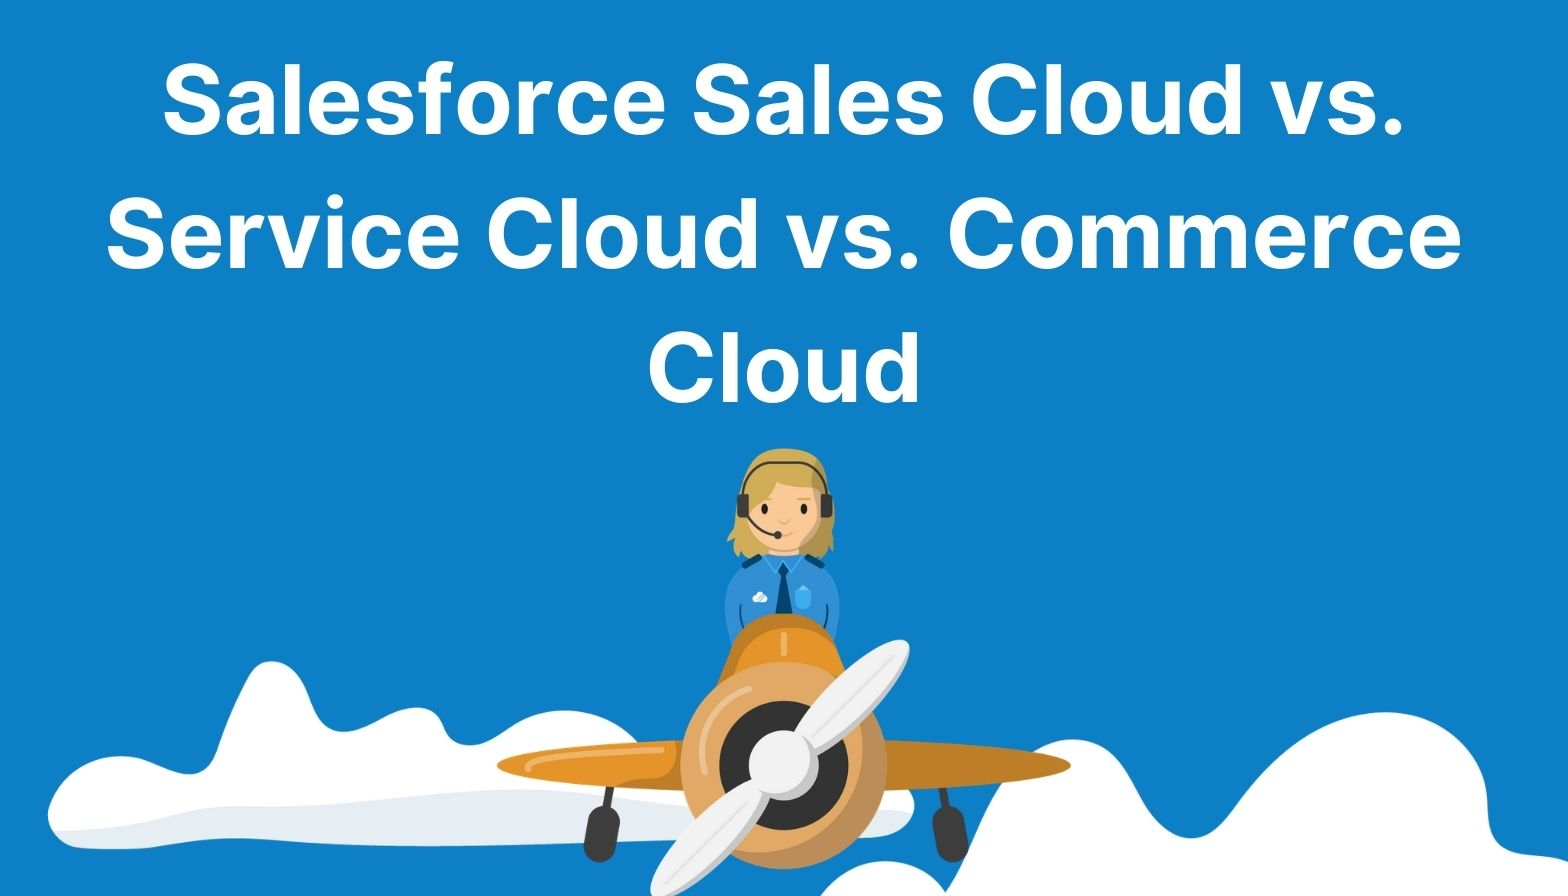 Salesforce Sales Cloud vs Service Cloud vs Commerce Cloud